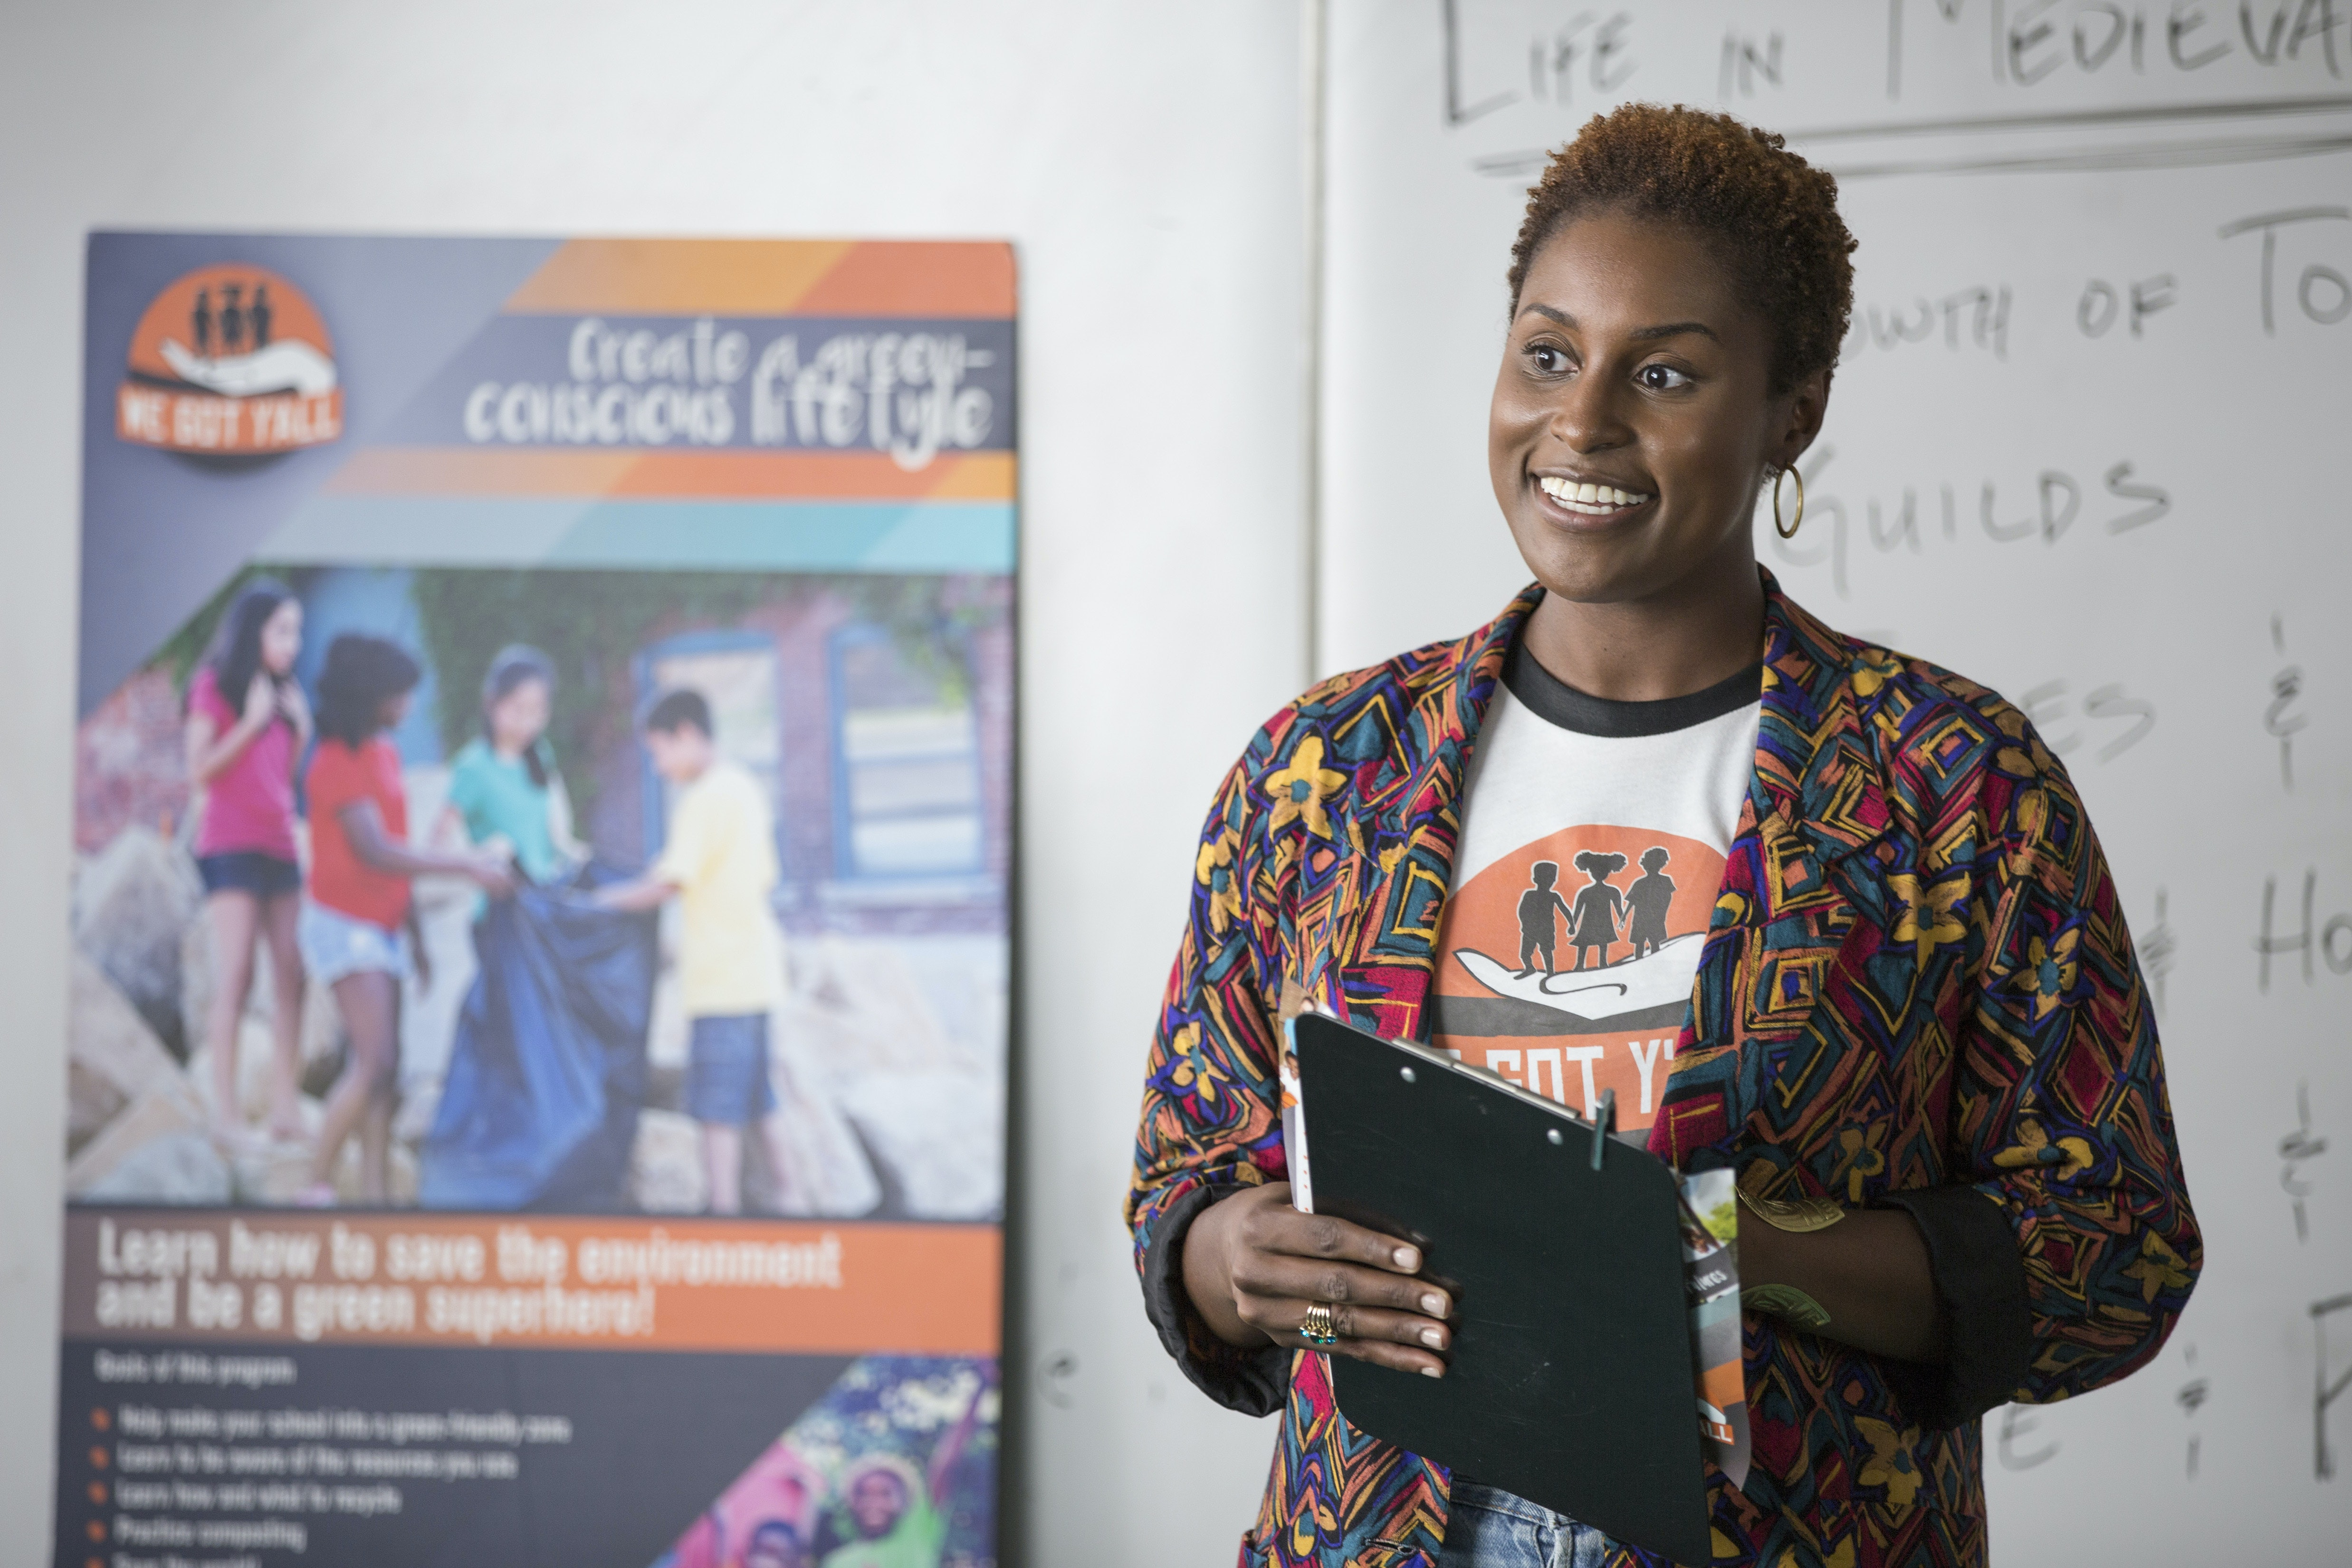 Issa Rae's 'Insecure' look at life in LA